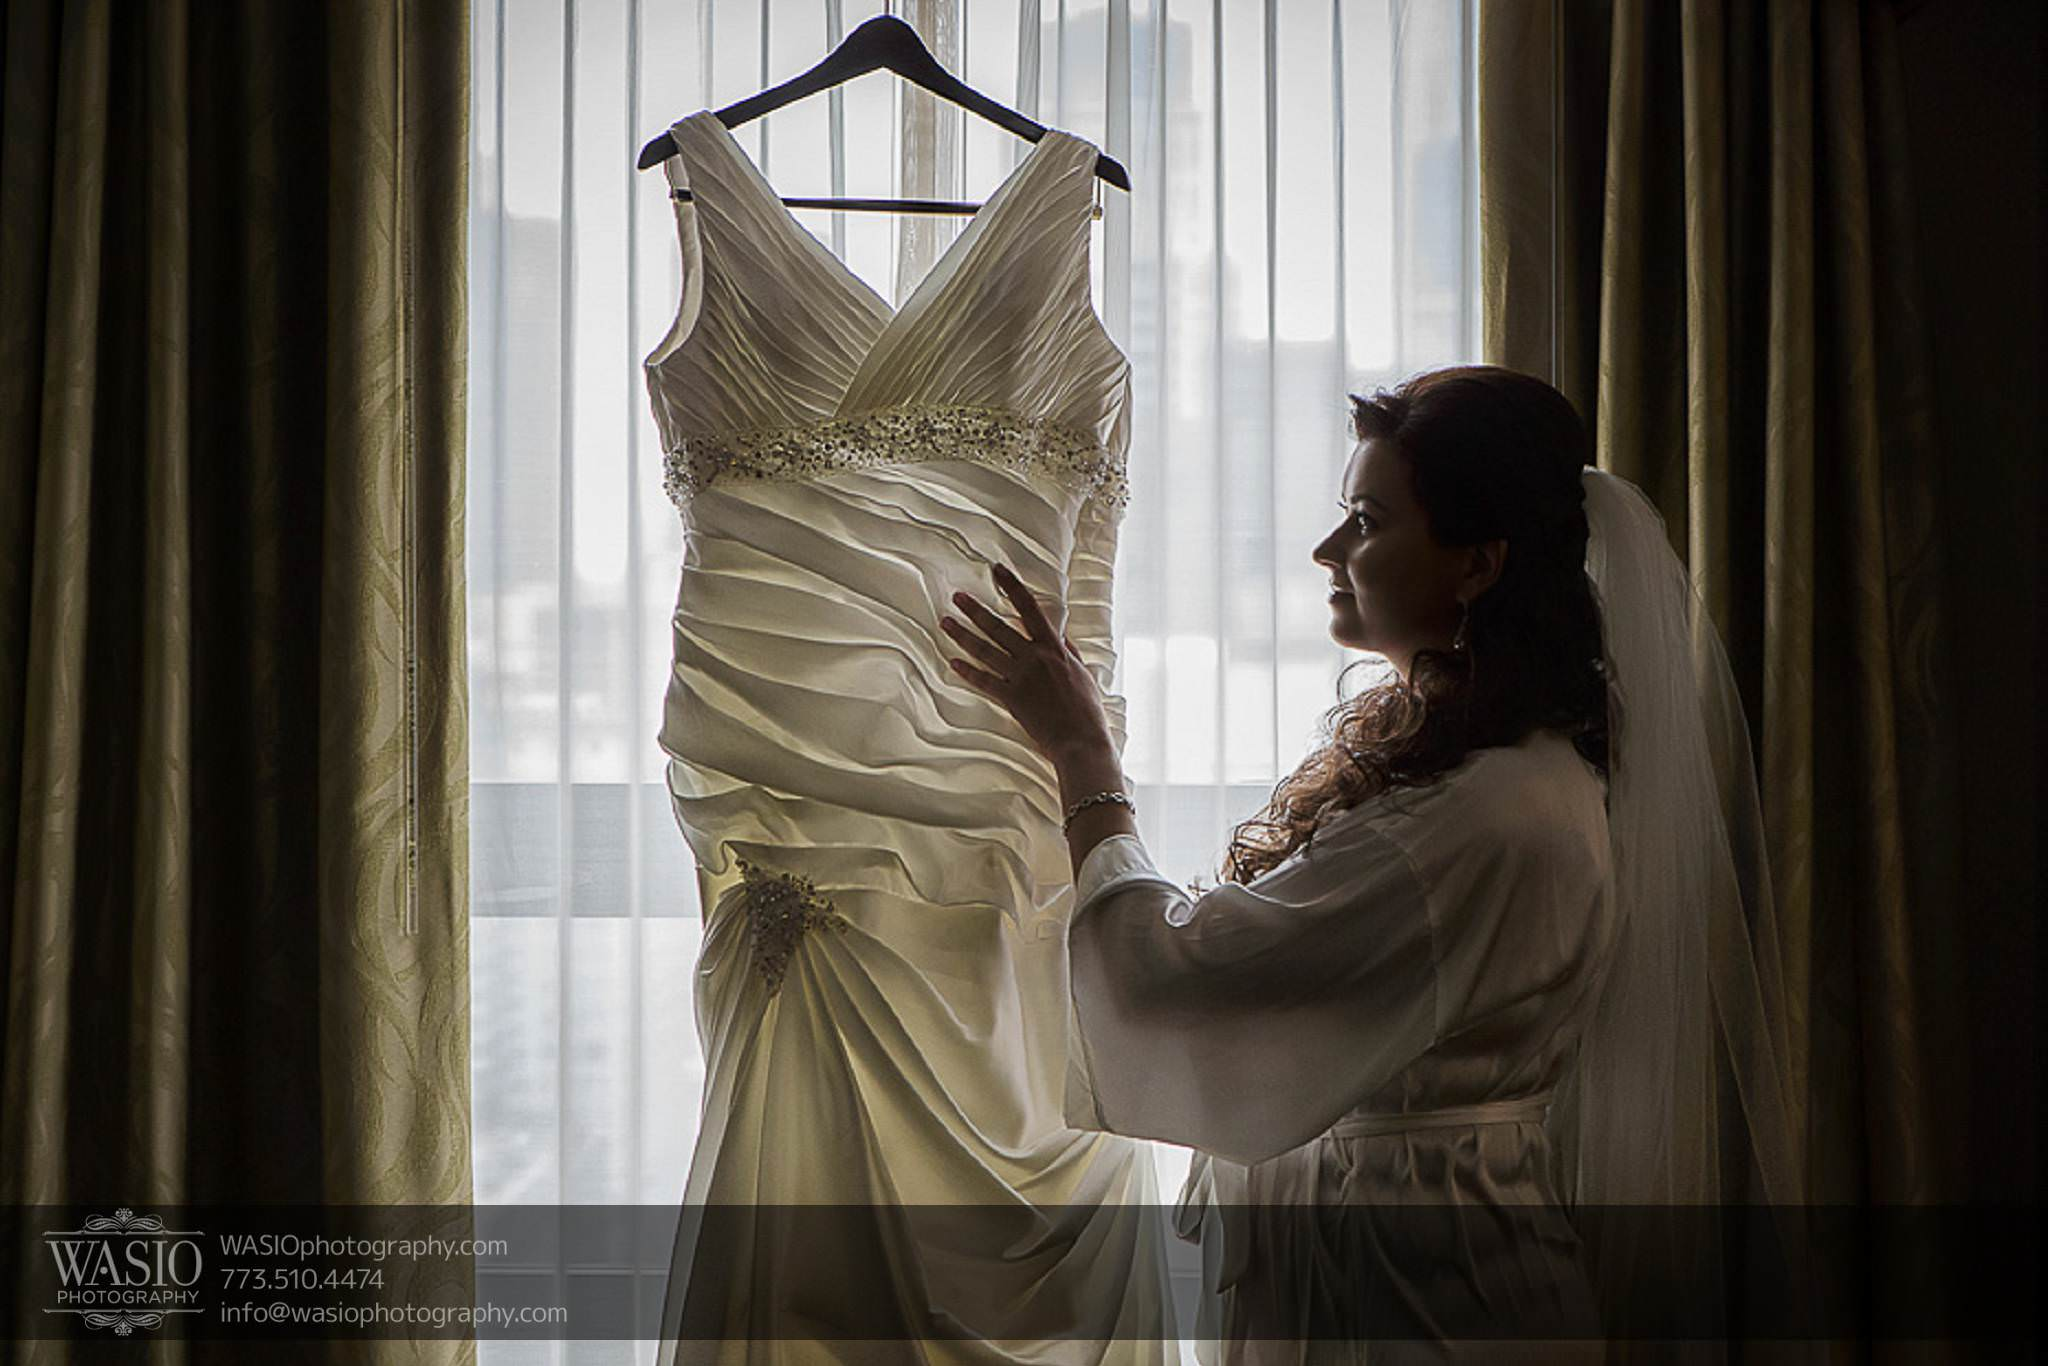 Chicago-wedding-photos-bride-bridal-wedding-dress-white-044 Chicago Wedding Photos - Svetlana + Yuriy